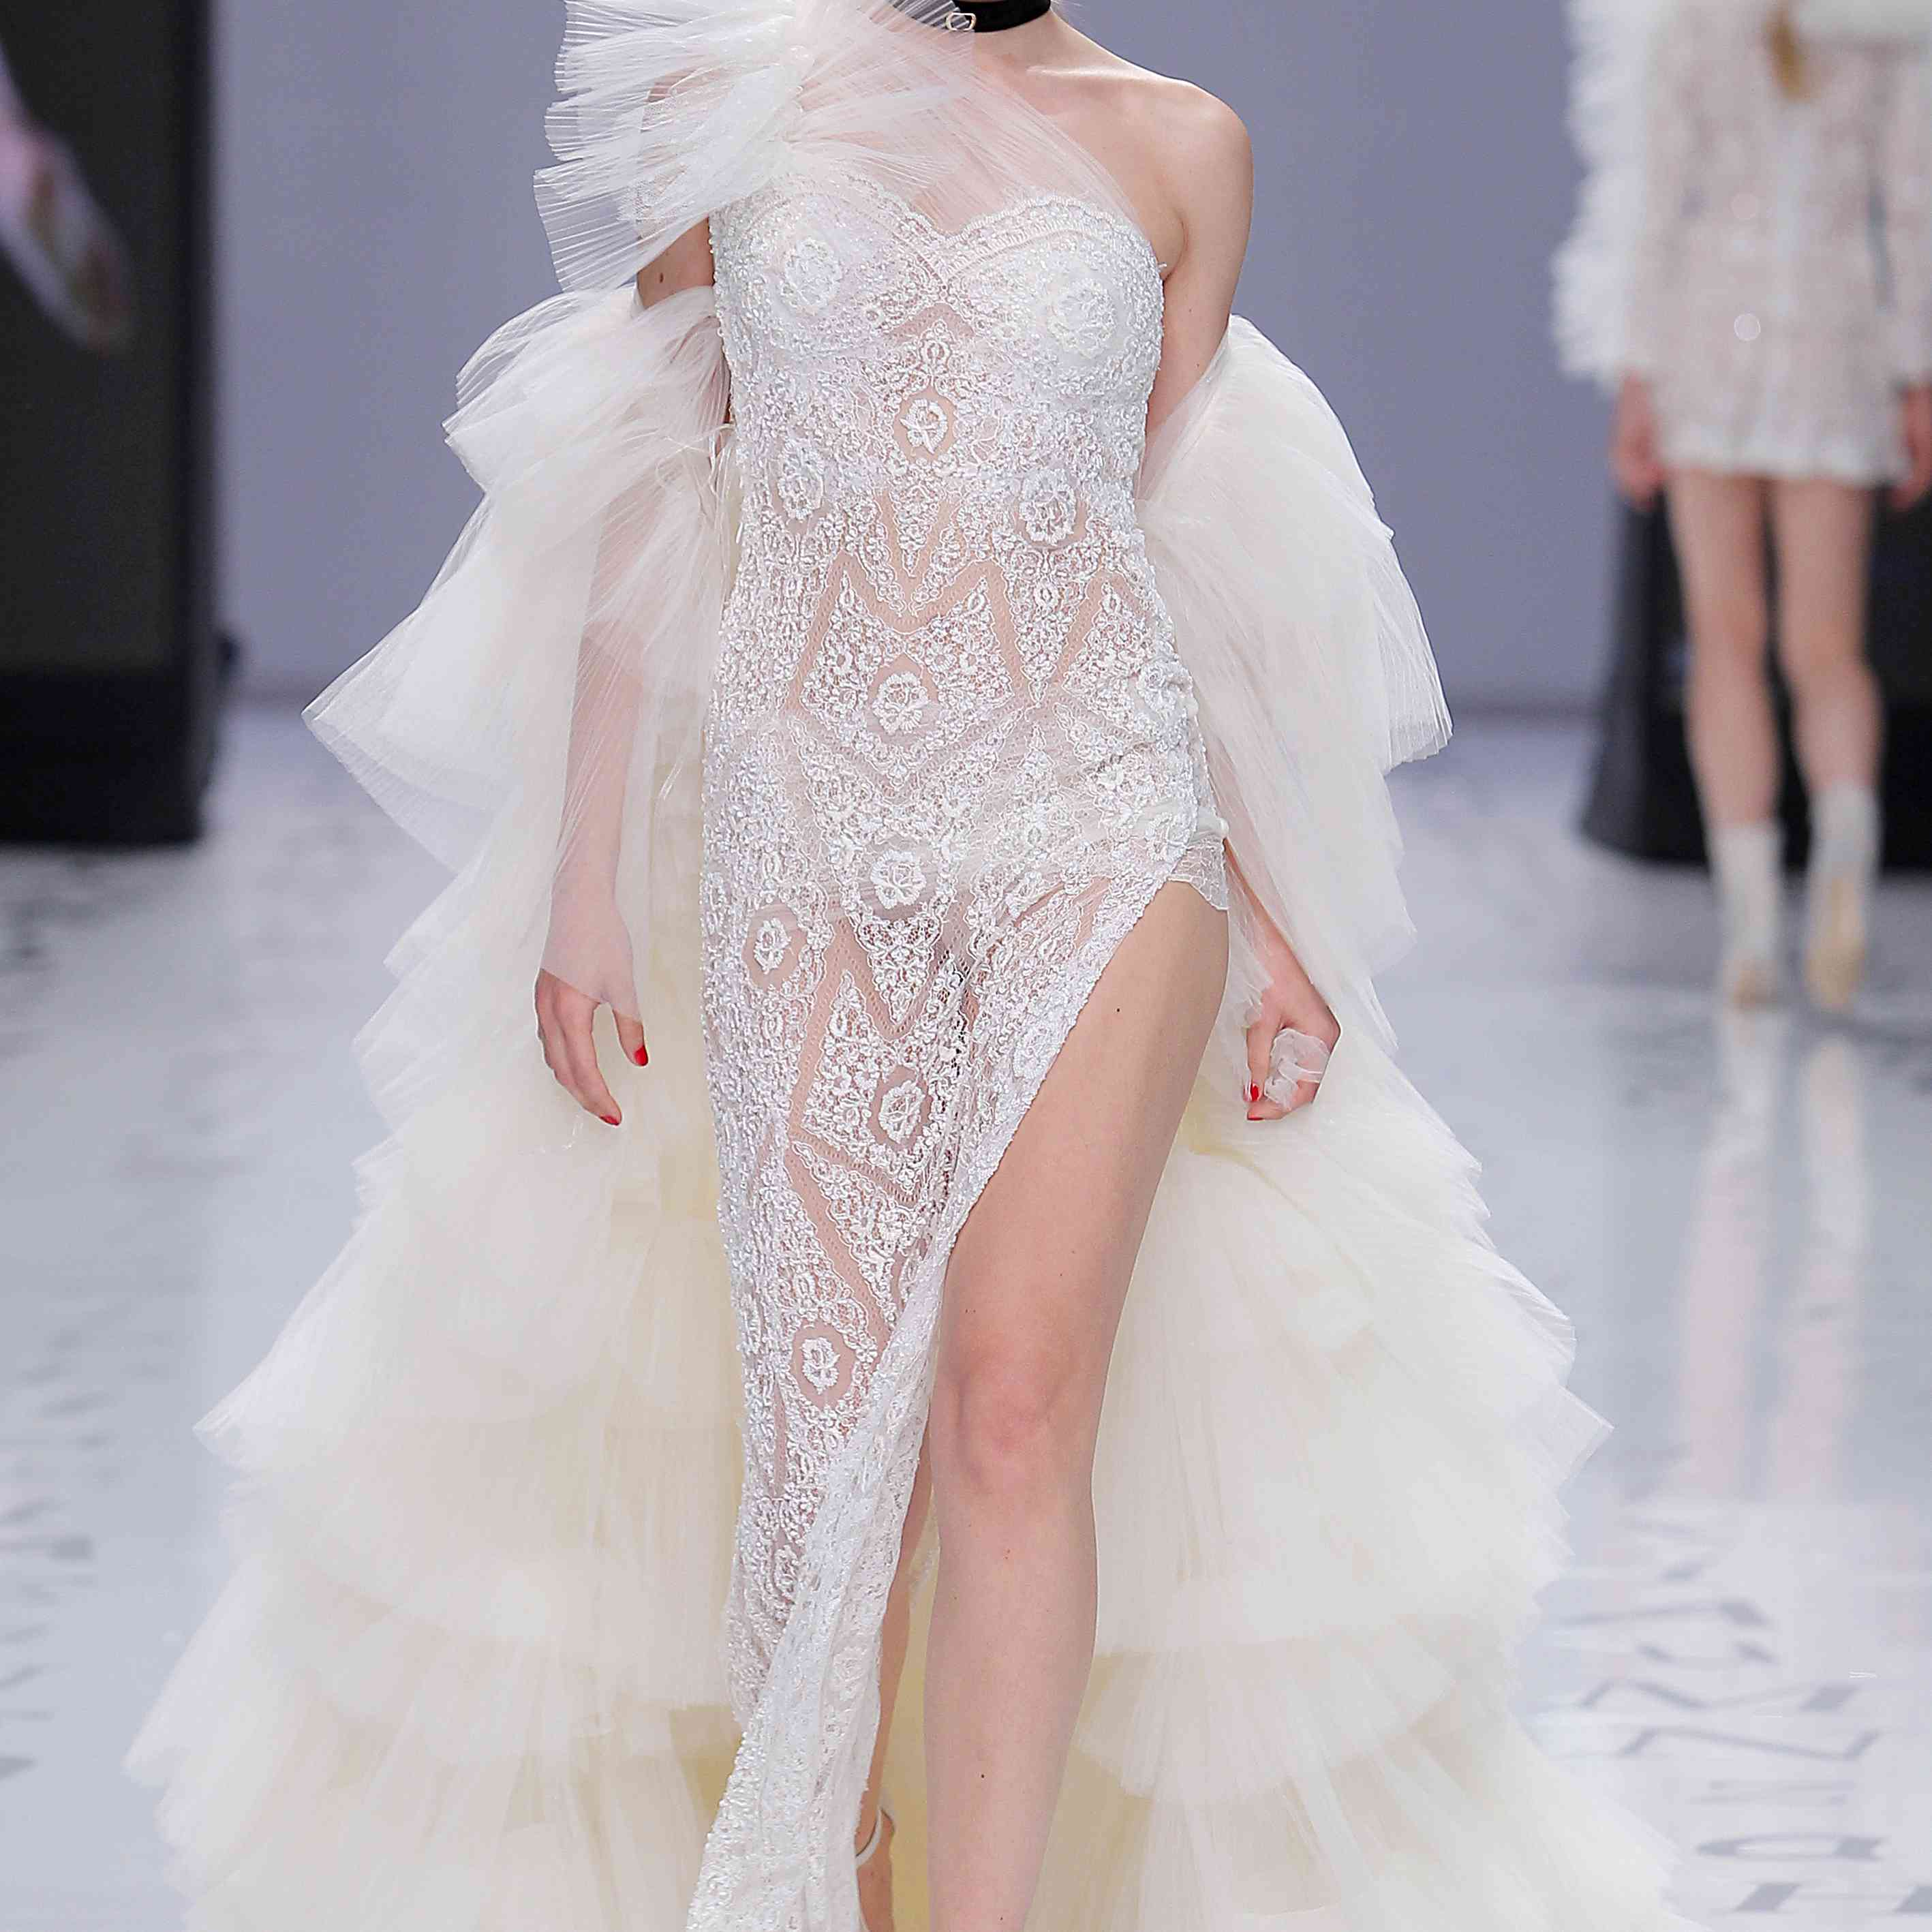 Model in a strapless rhinestone-embroidered tulle mermaid dress with a deep side slit and a one-shouldered tulle overlay with a dramatic shoulder embellishment and an off-the-shoulder tiered tulle coat